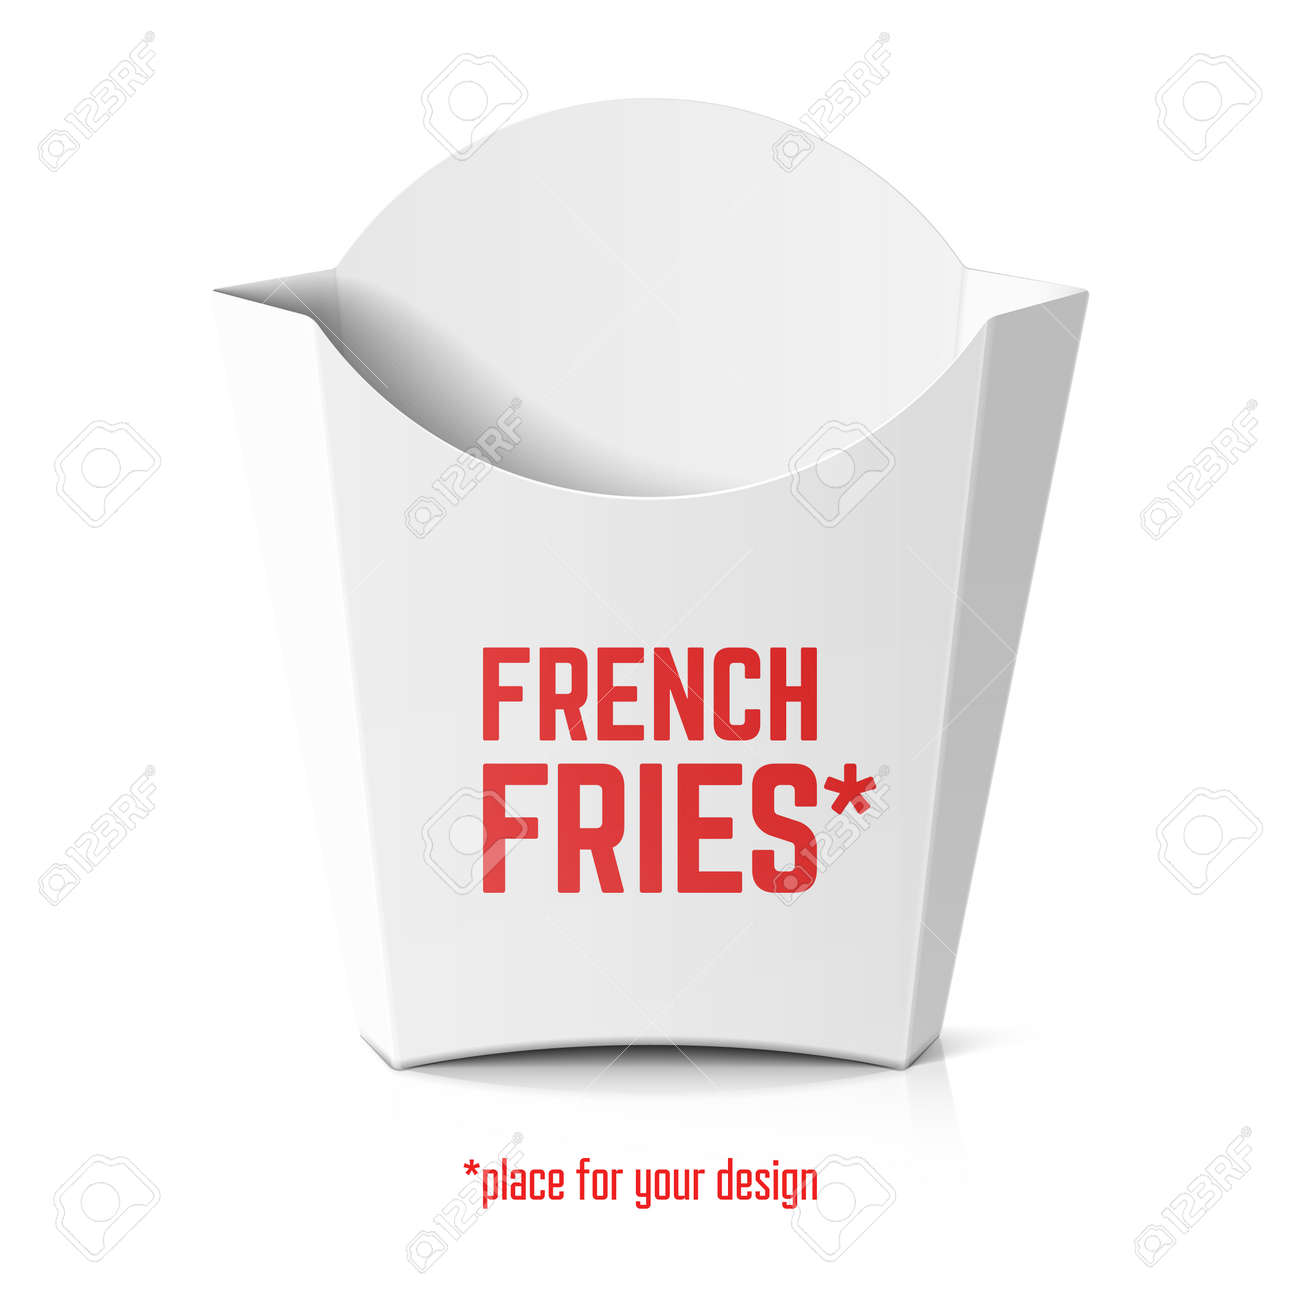 French Fries White Paper Box Template For Your Design Royalty Free ...